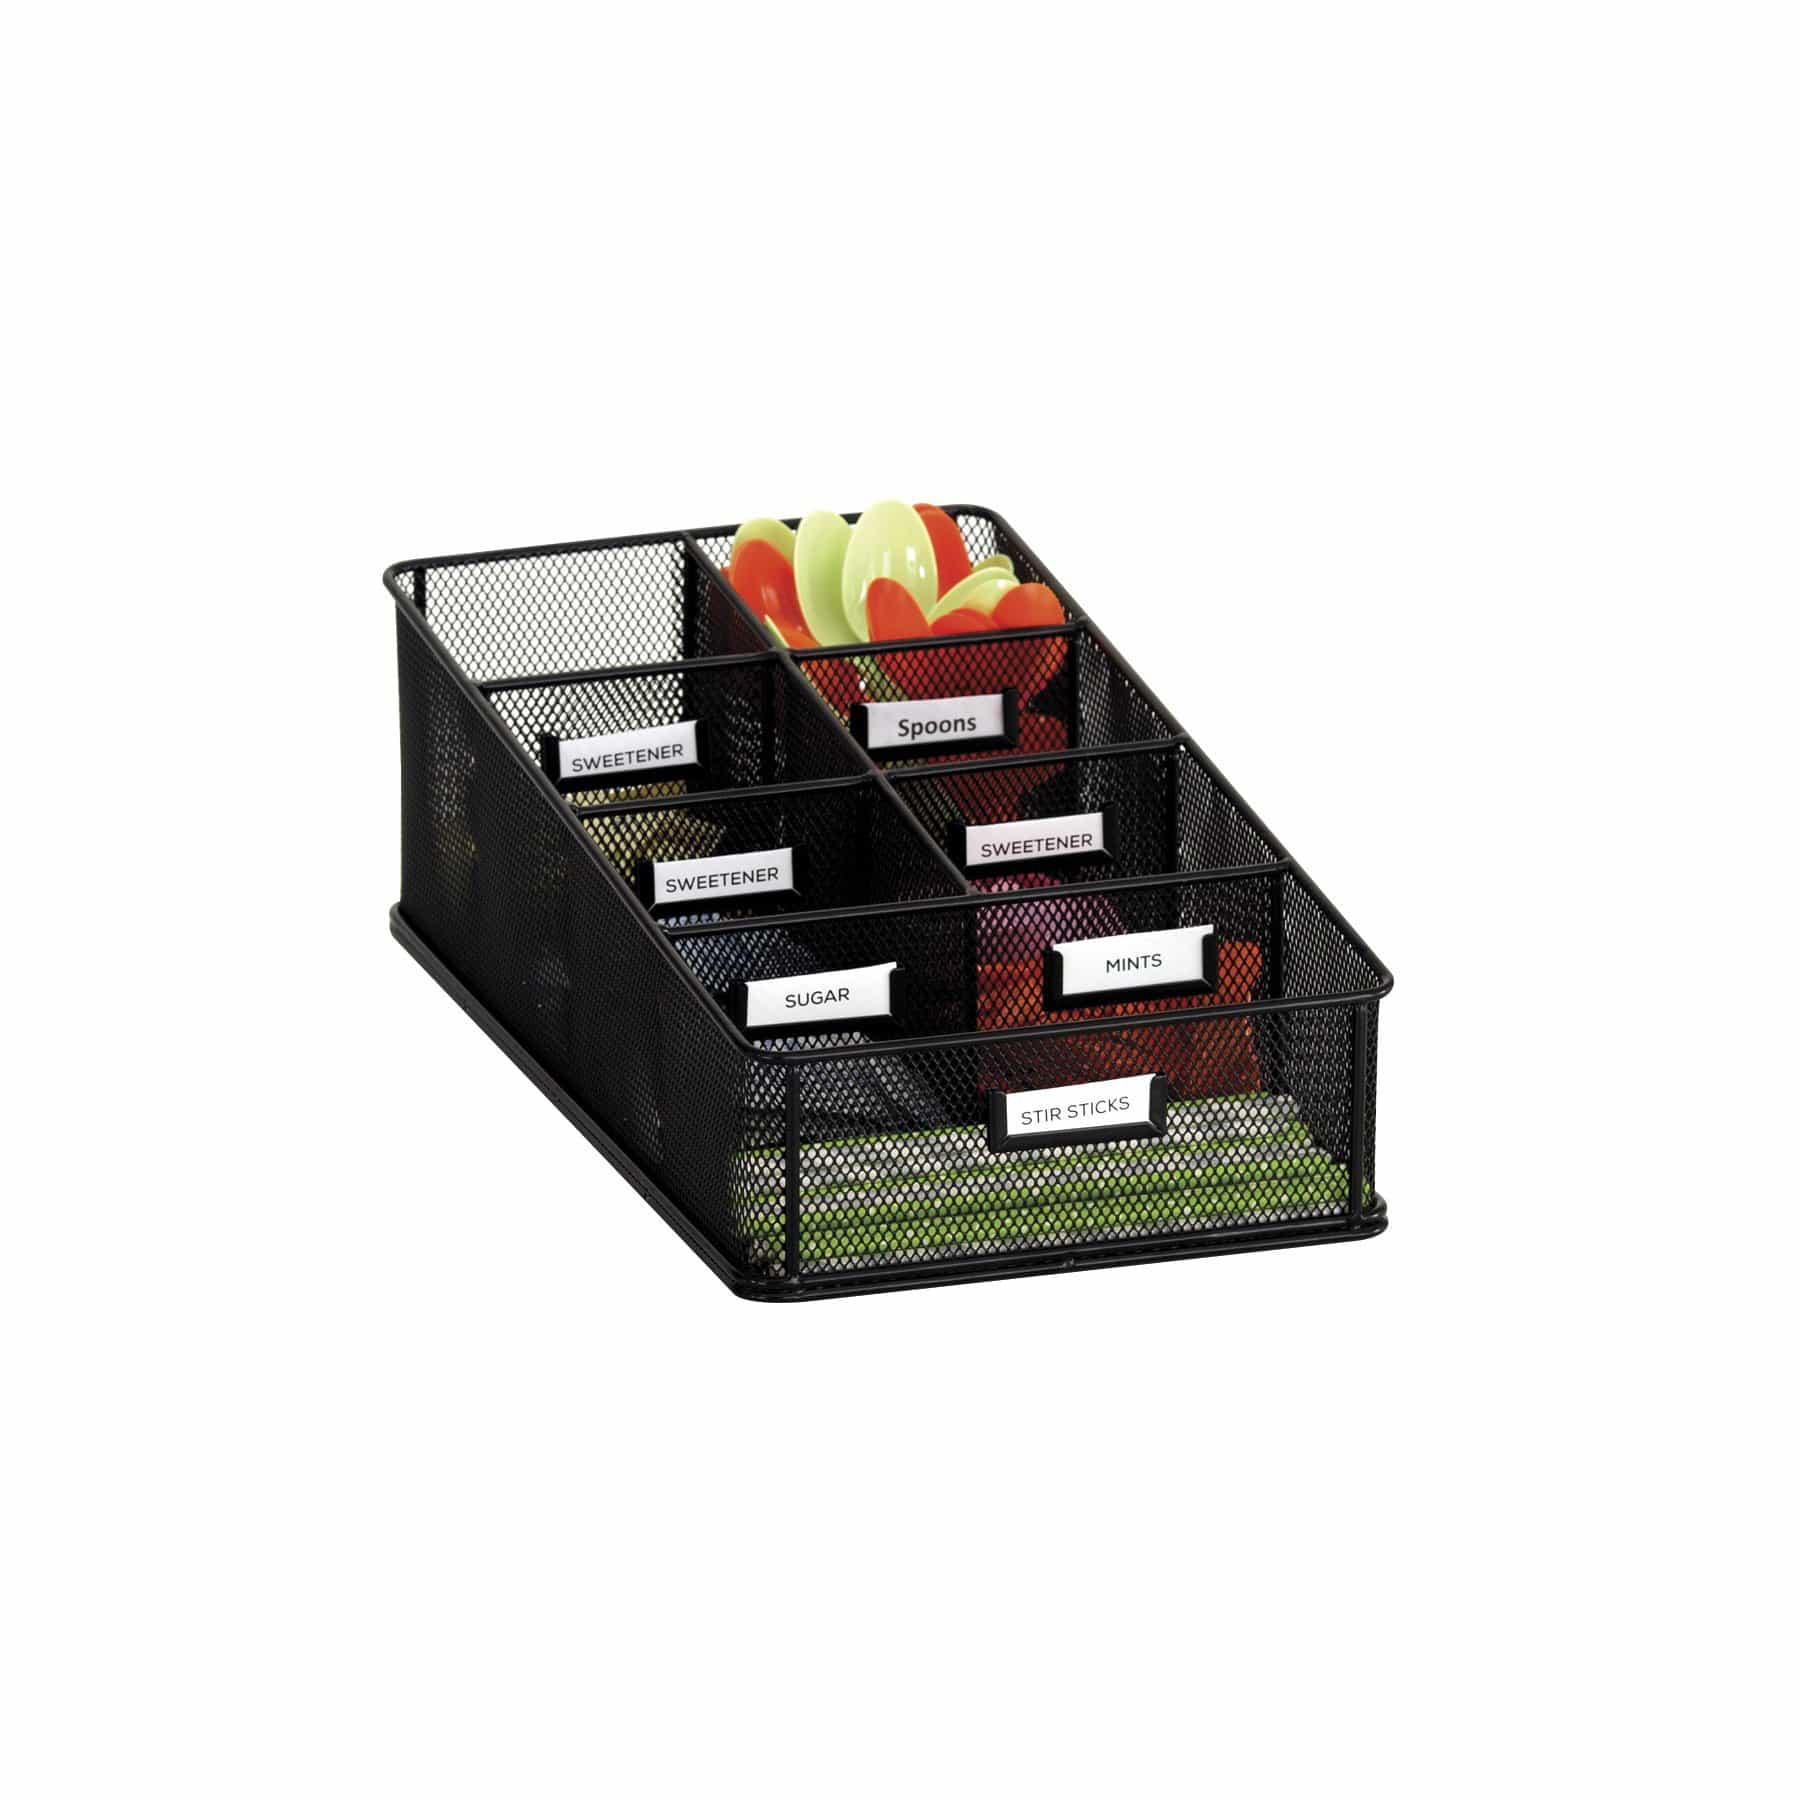 bedinhome - 3291BL Onyx Break Room Supplies Six Equal Sized and One Larger Compartment Black Condiment Carton - Safco - Condiment Carton